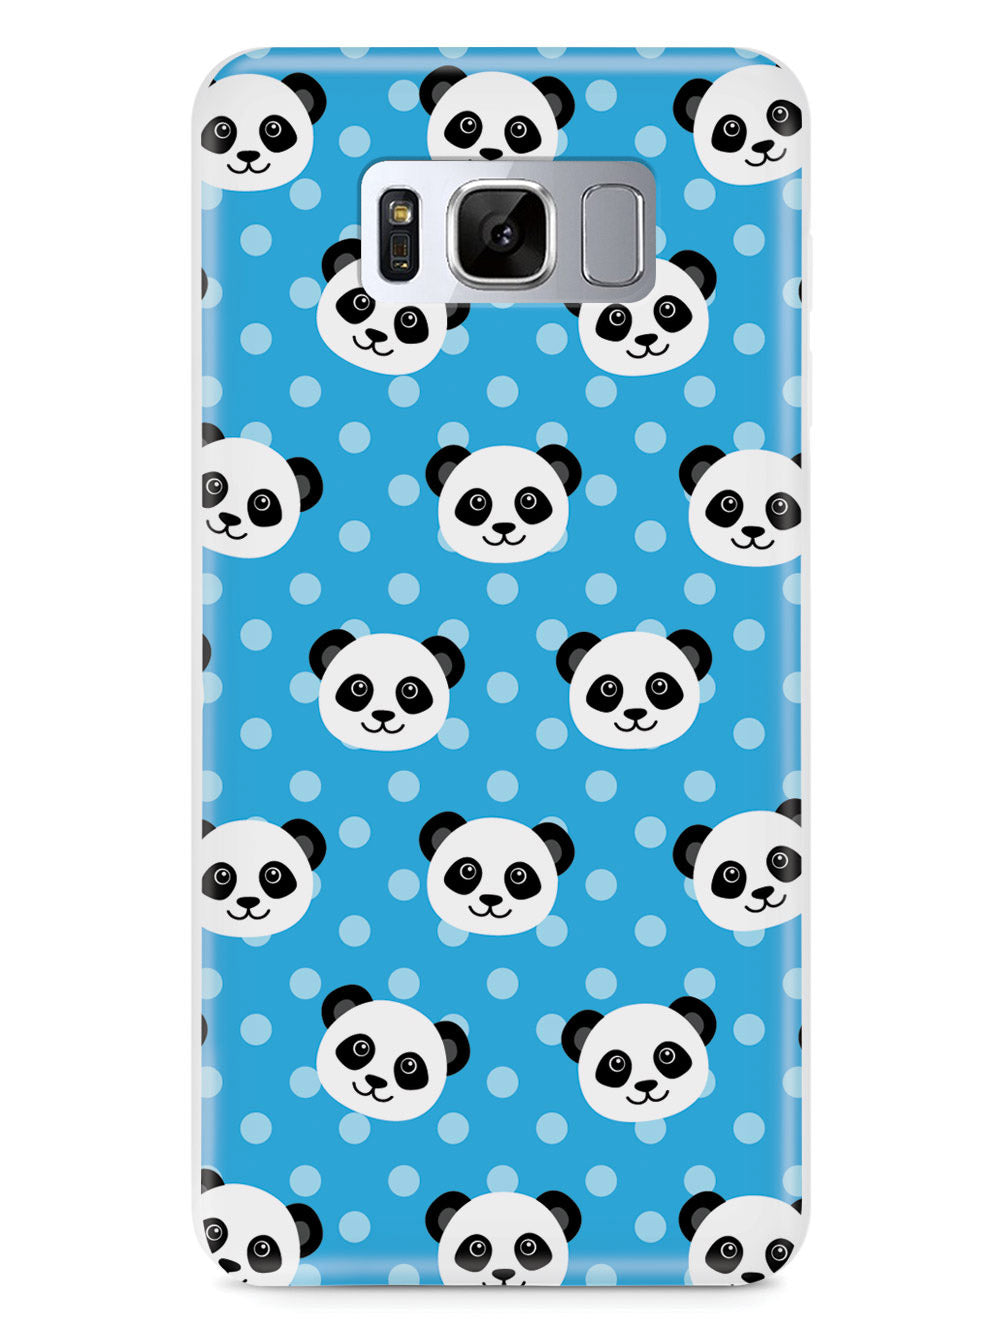 Cute Panda Pattern - Blue Polka Dots Case